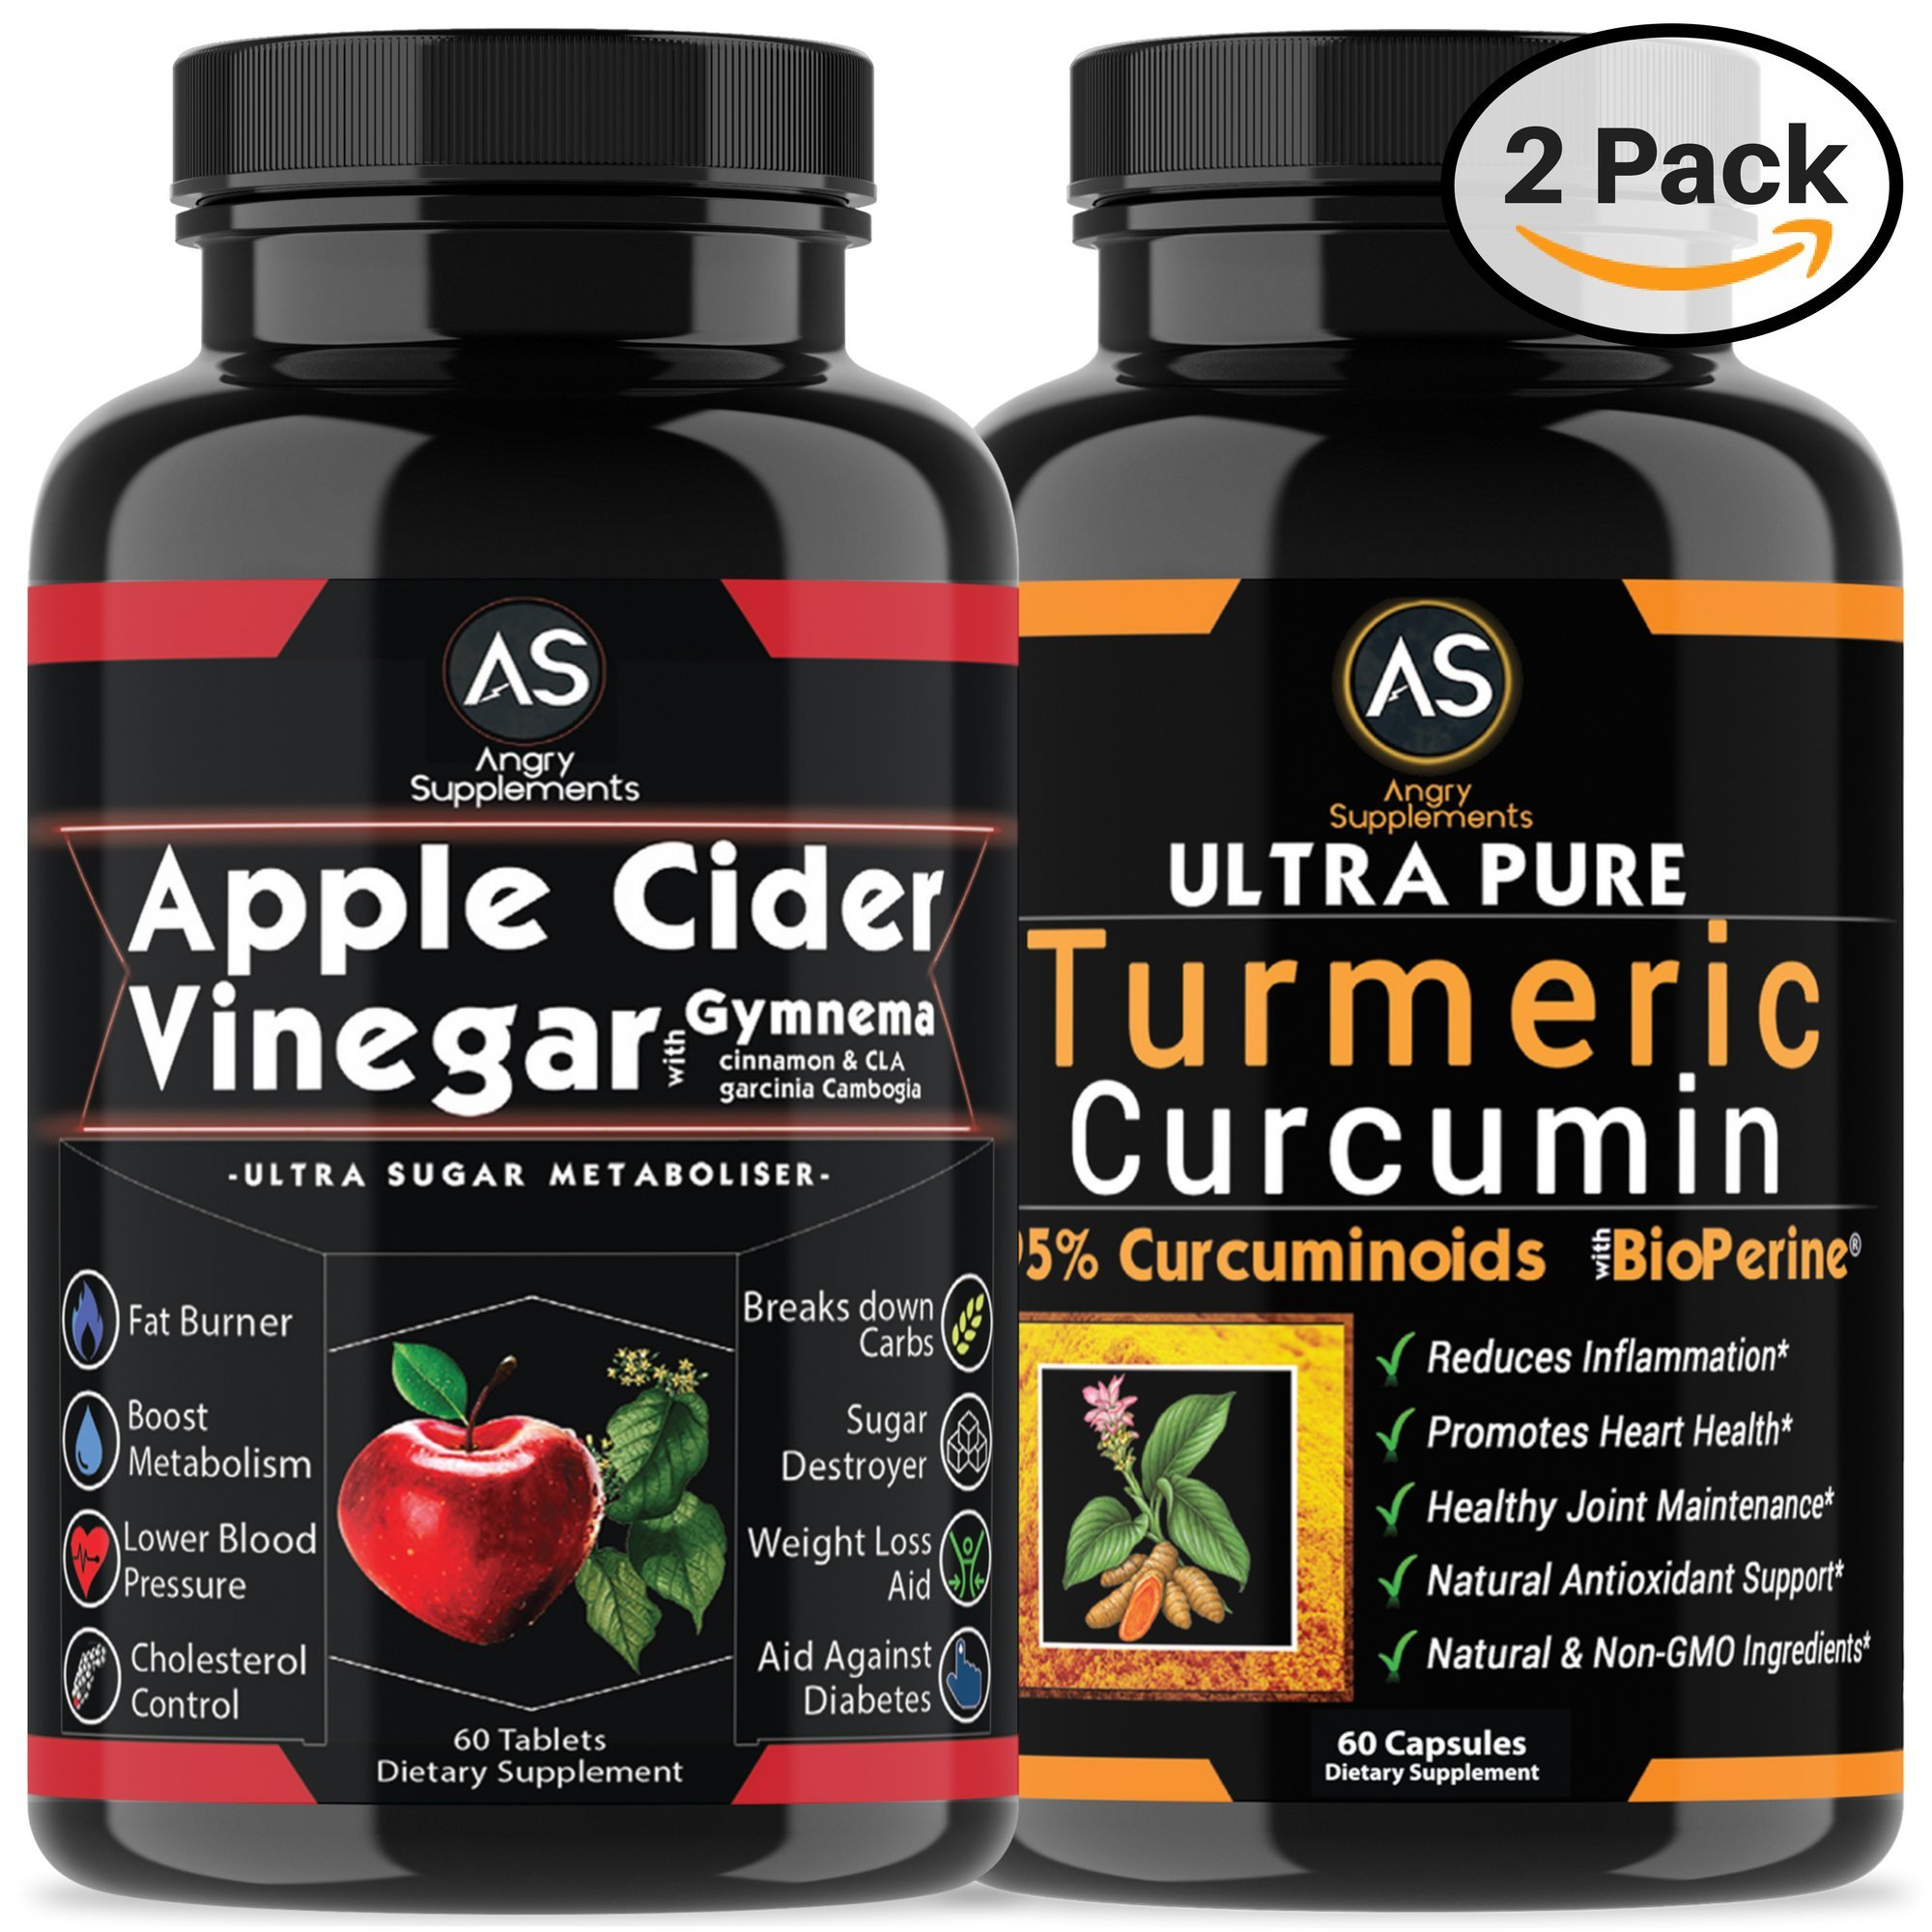 Apple Cider Vinegar Pills for Weightloss and Turmeric Curcumin [2 Pack Bundle] Natural Detox Remedy Includes Gymnema, Garcinia, & BioPerine for Complete Diet and Health - Best Starter Kit or Gift. by Angry Supplements